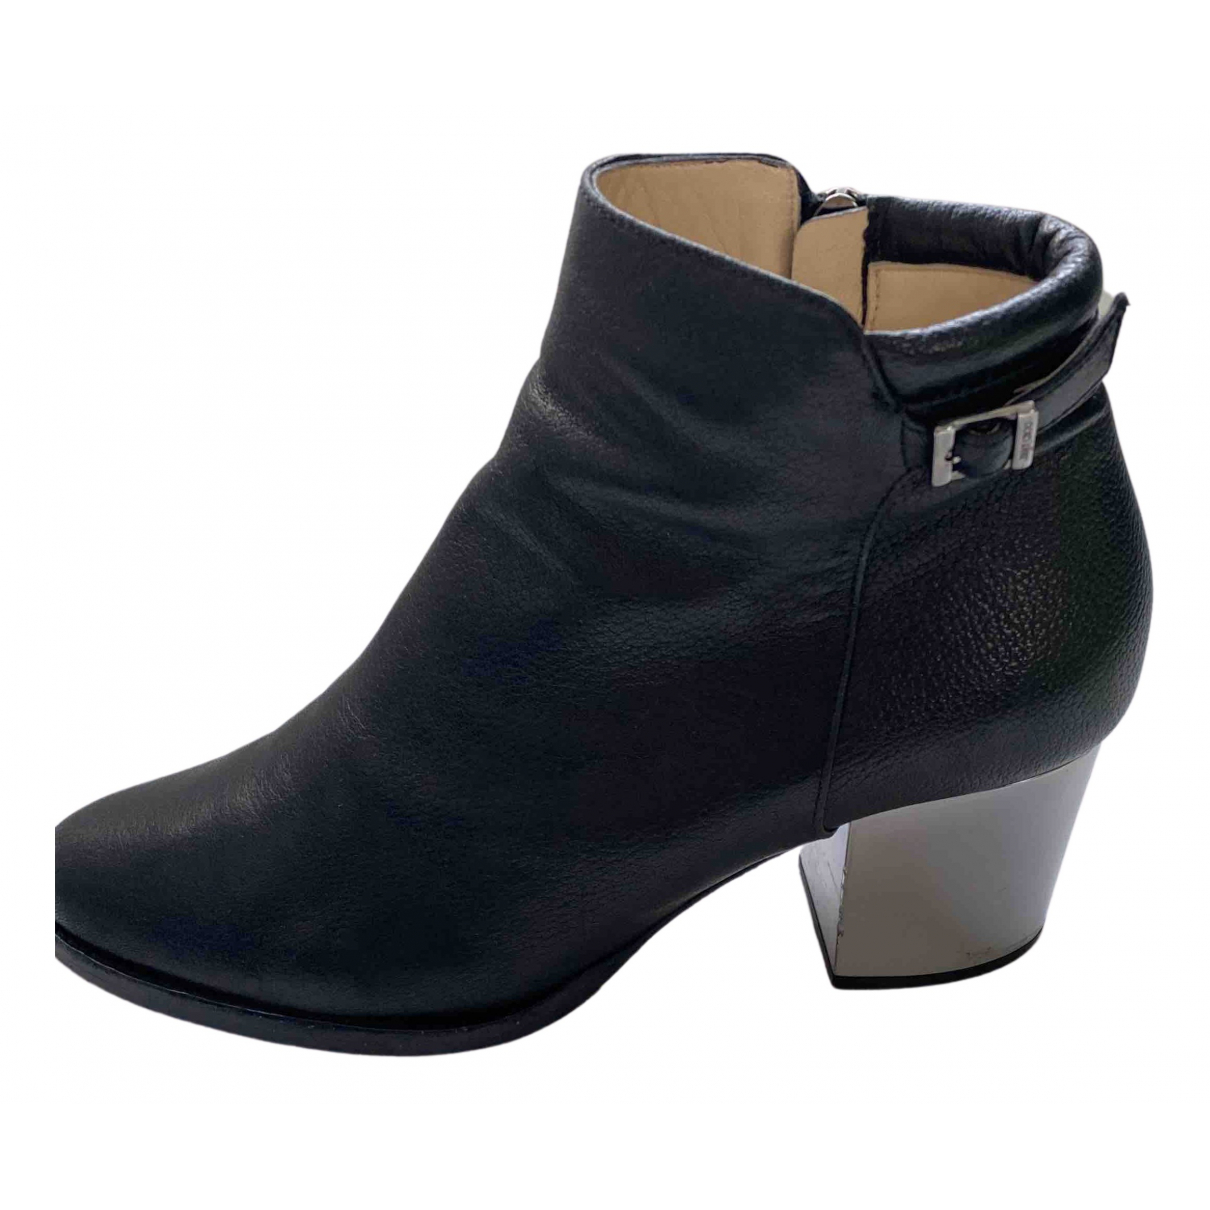 Jimmy Choo N Black Leather Ankle boots for Women 38 EU